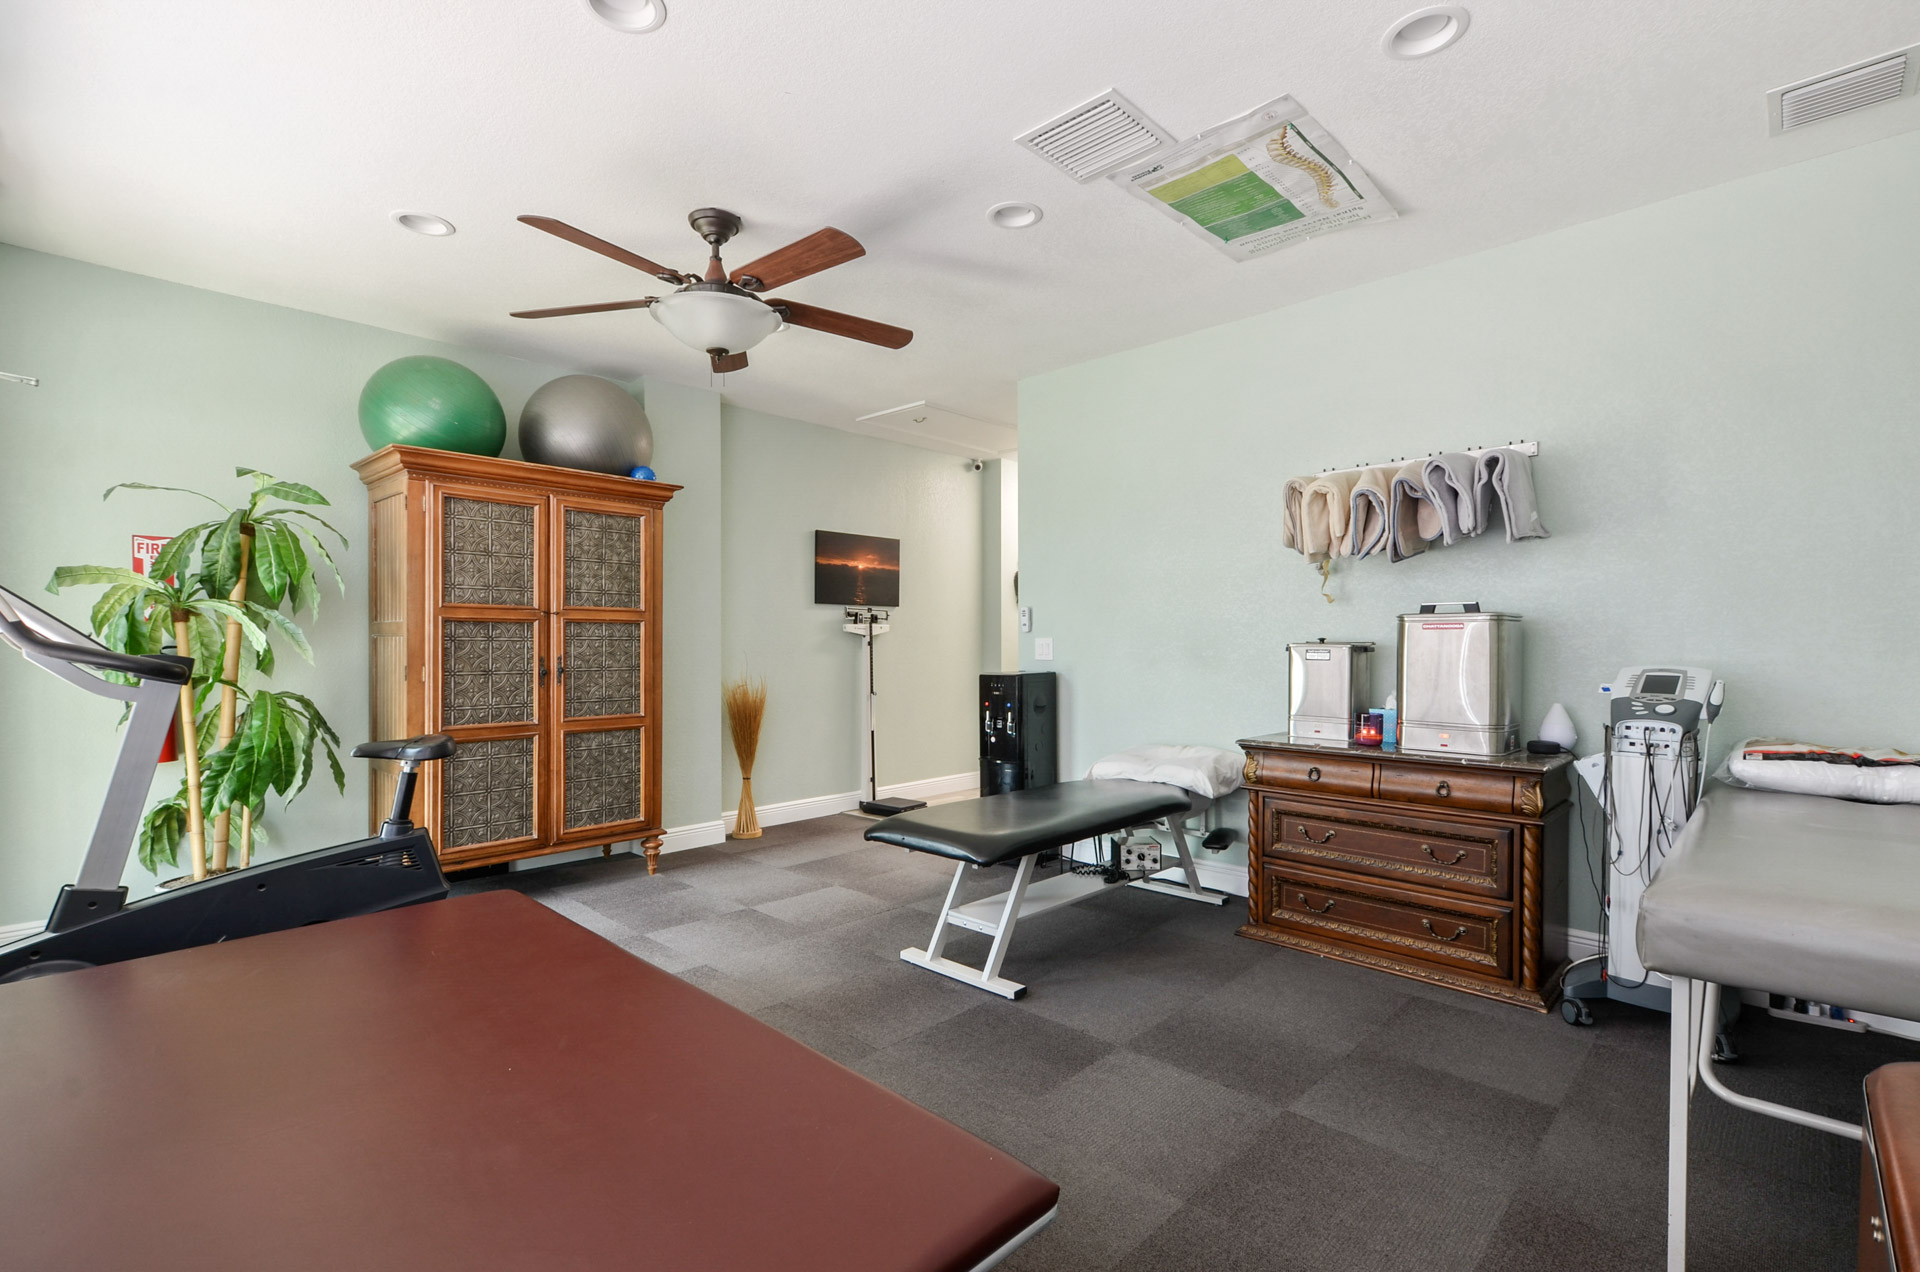 Core Chiropractic & Wellness Fitness Room